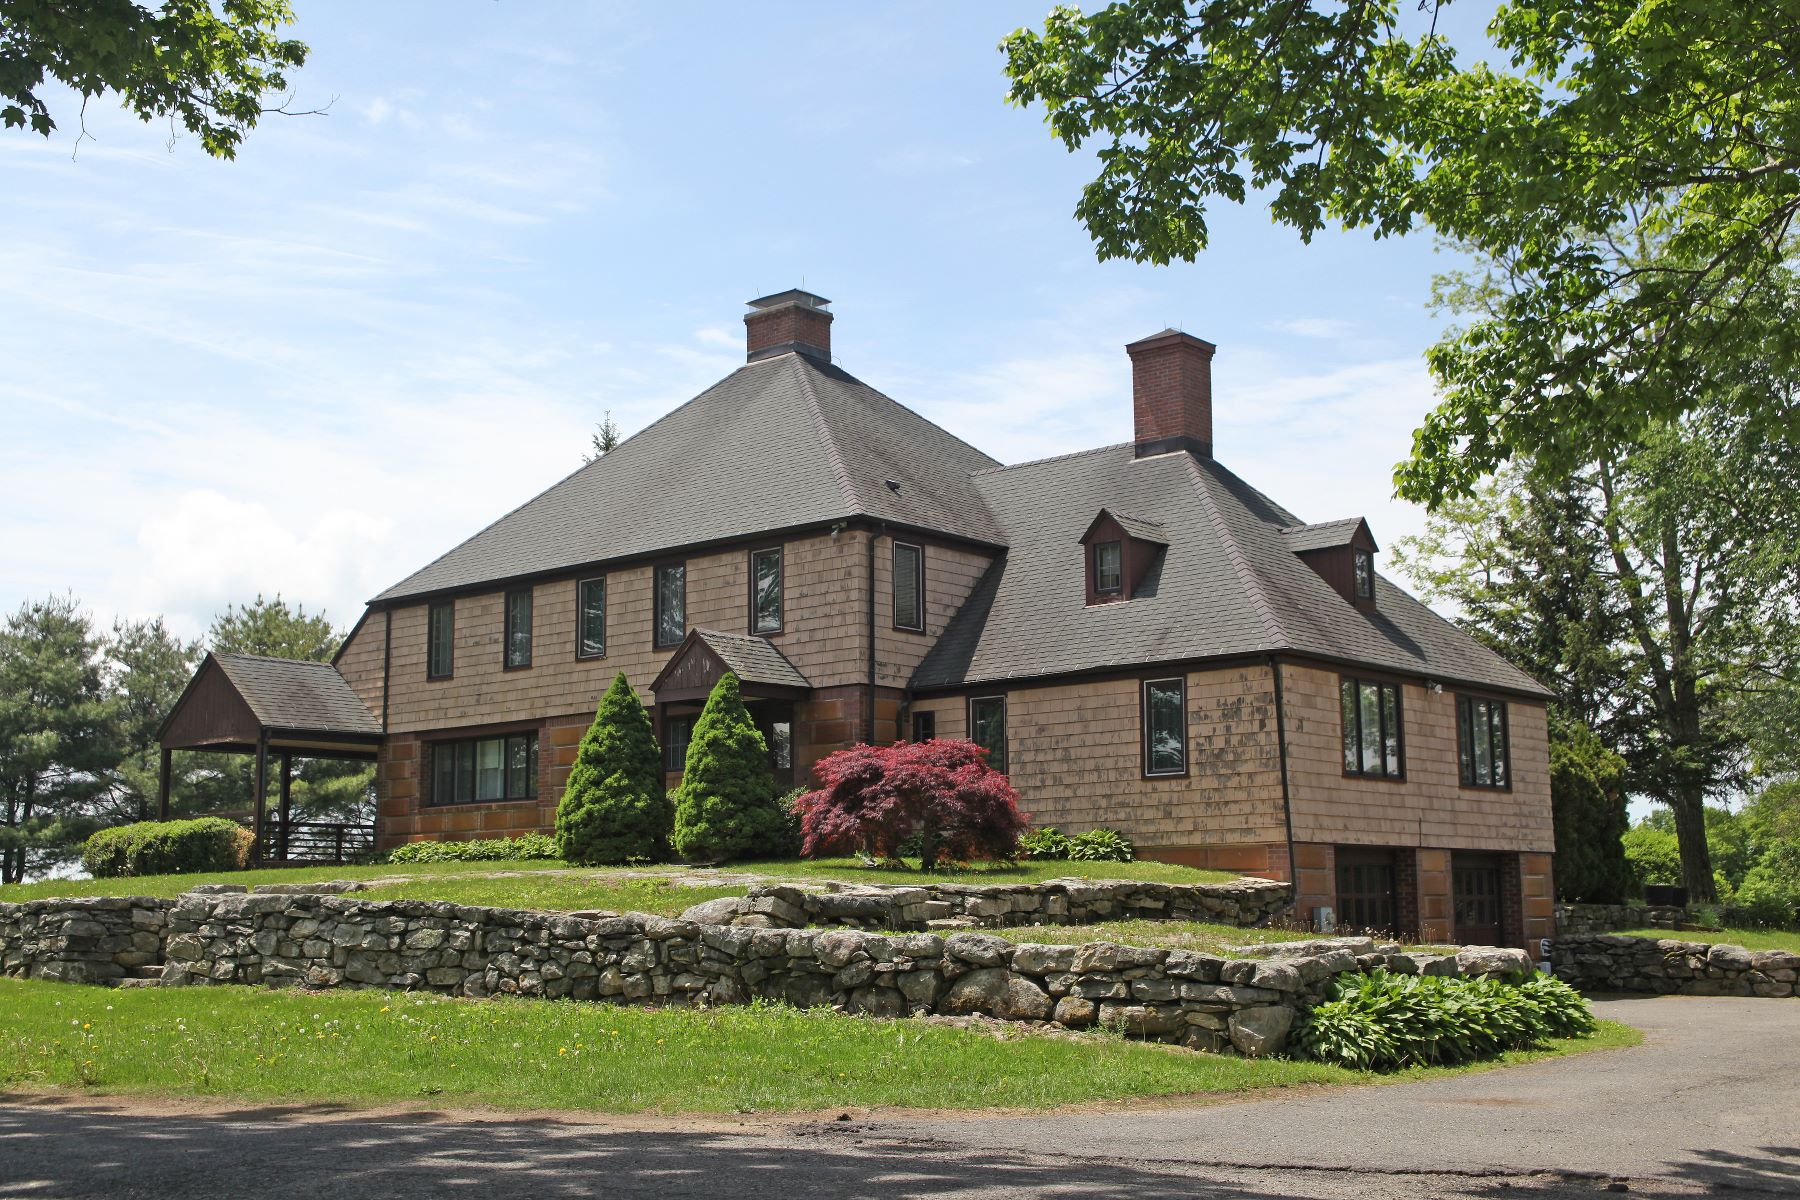 Additional photo for property listing at Stunning One of a Kind Manor House 400 5 1/2 Half Mile Road Cornwall, Connecticut 06753 United States